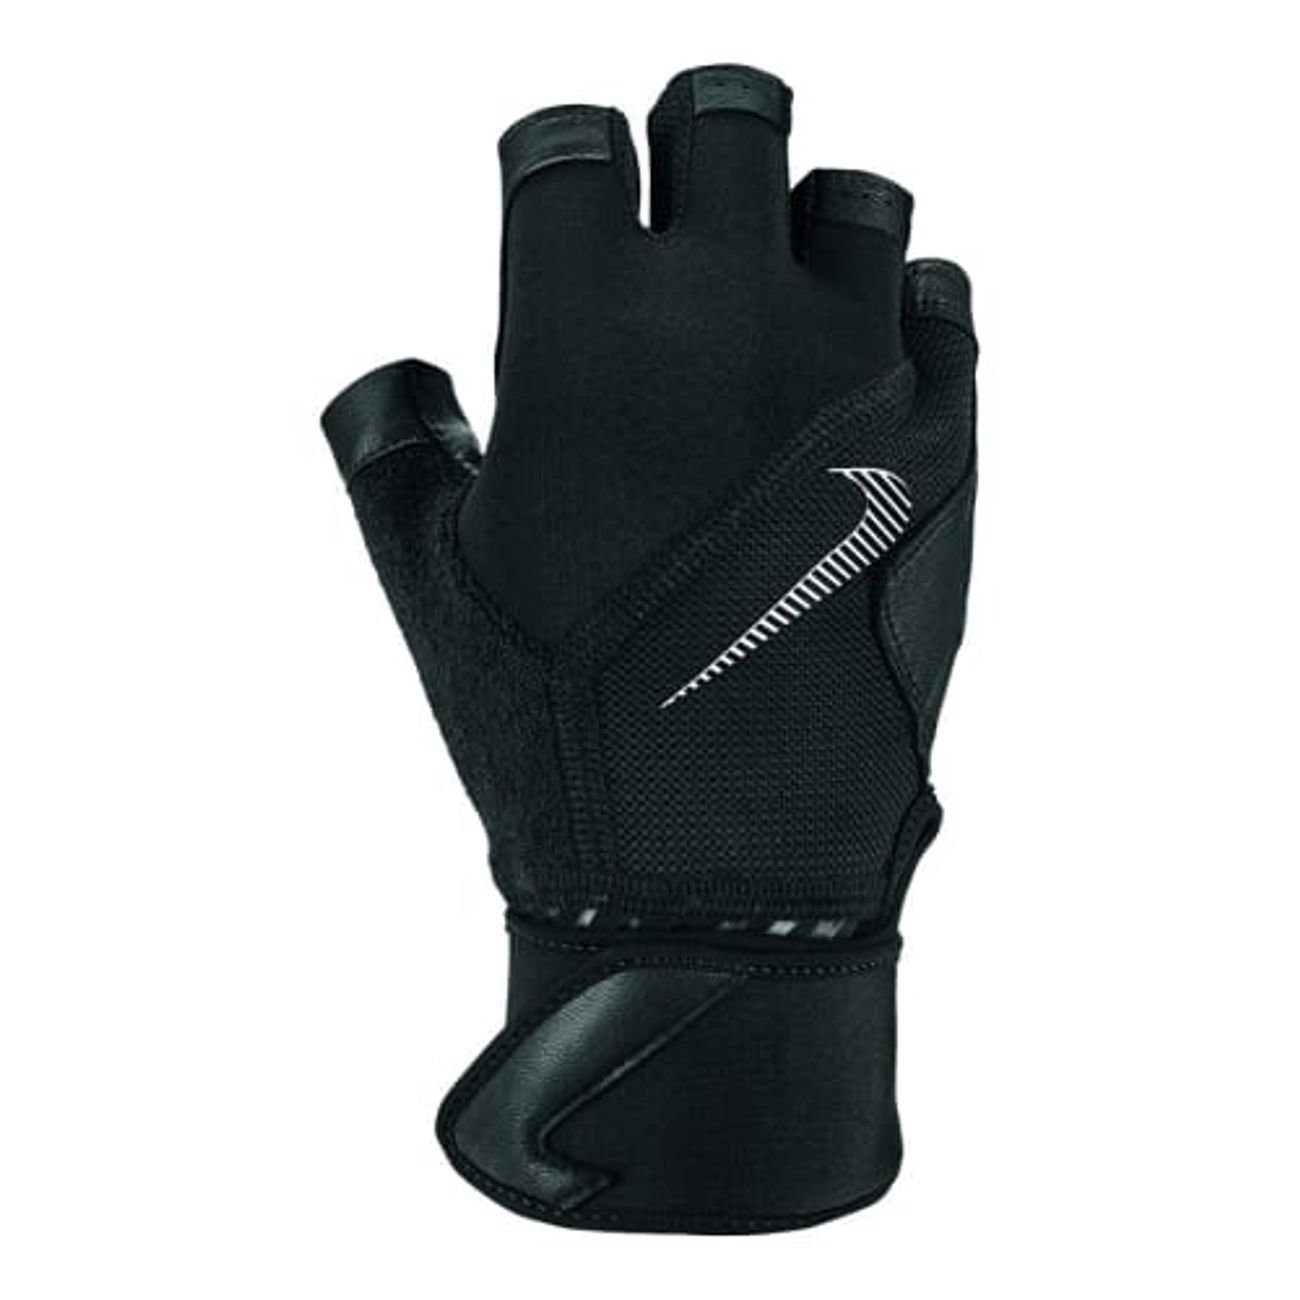 NIKE Gants Nike Elevated Fitness noir